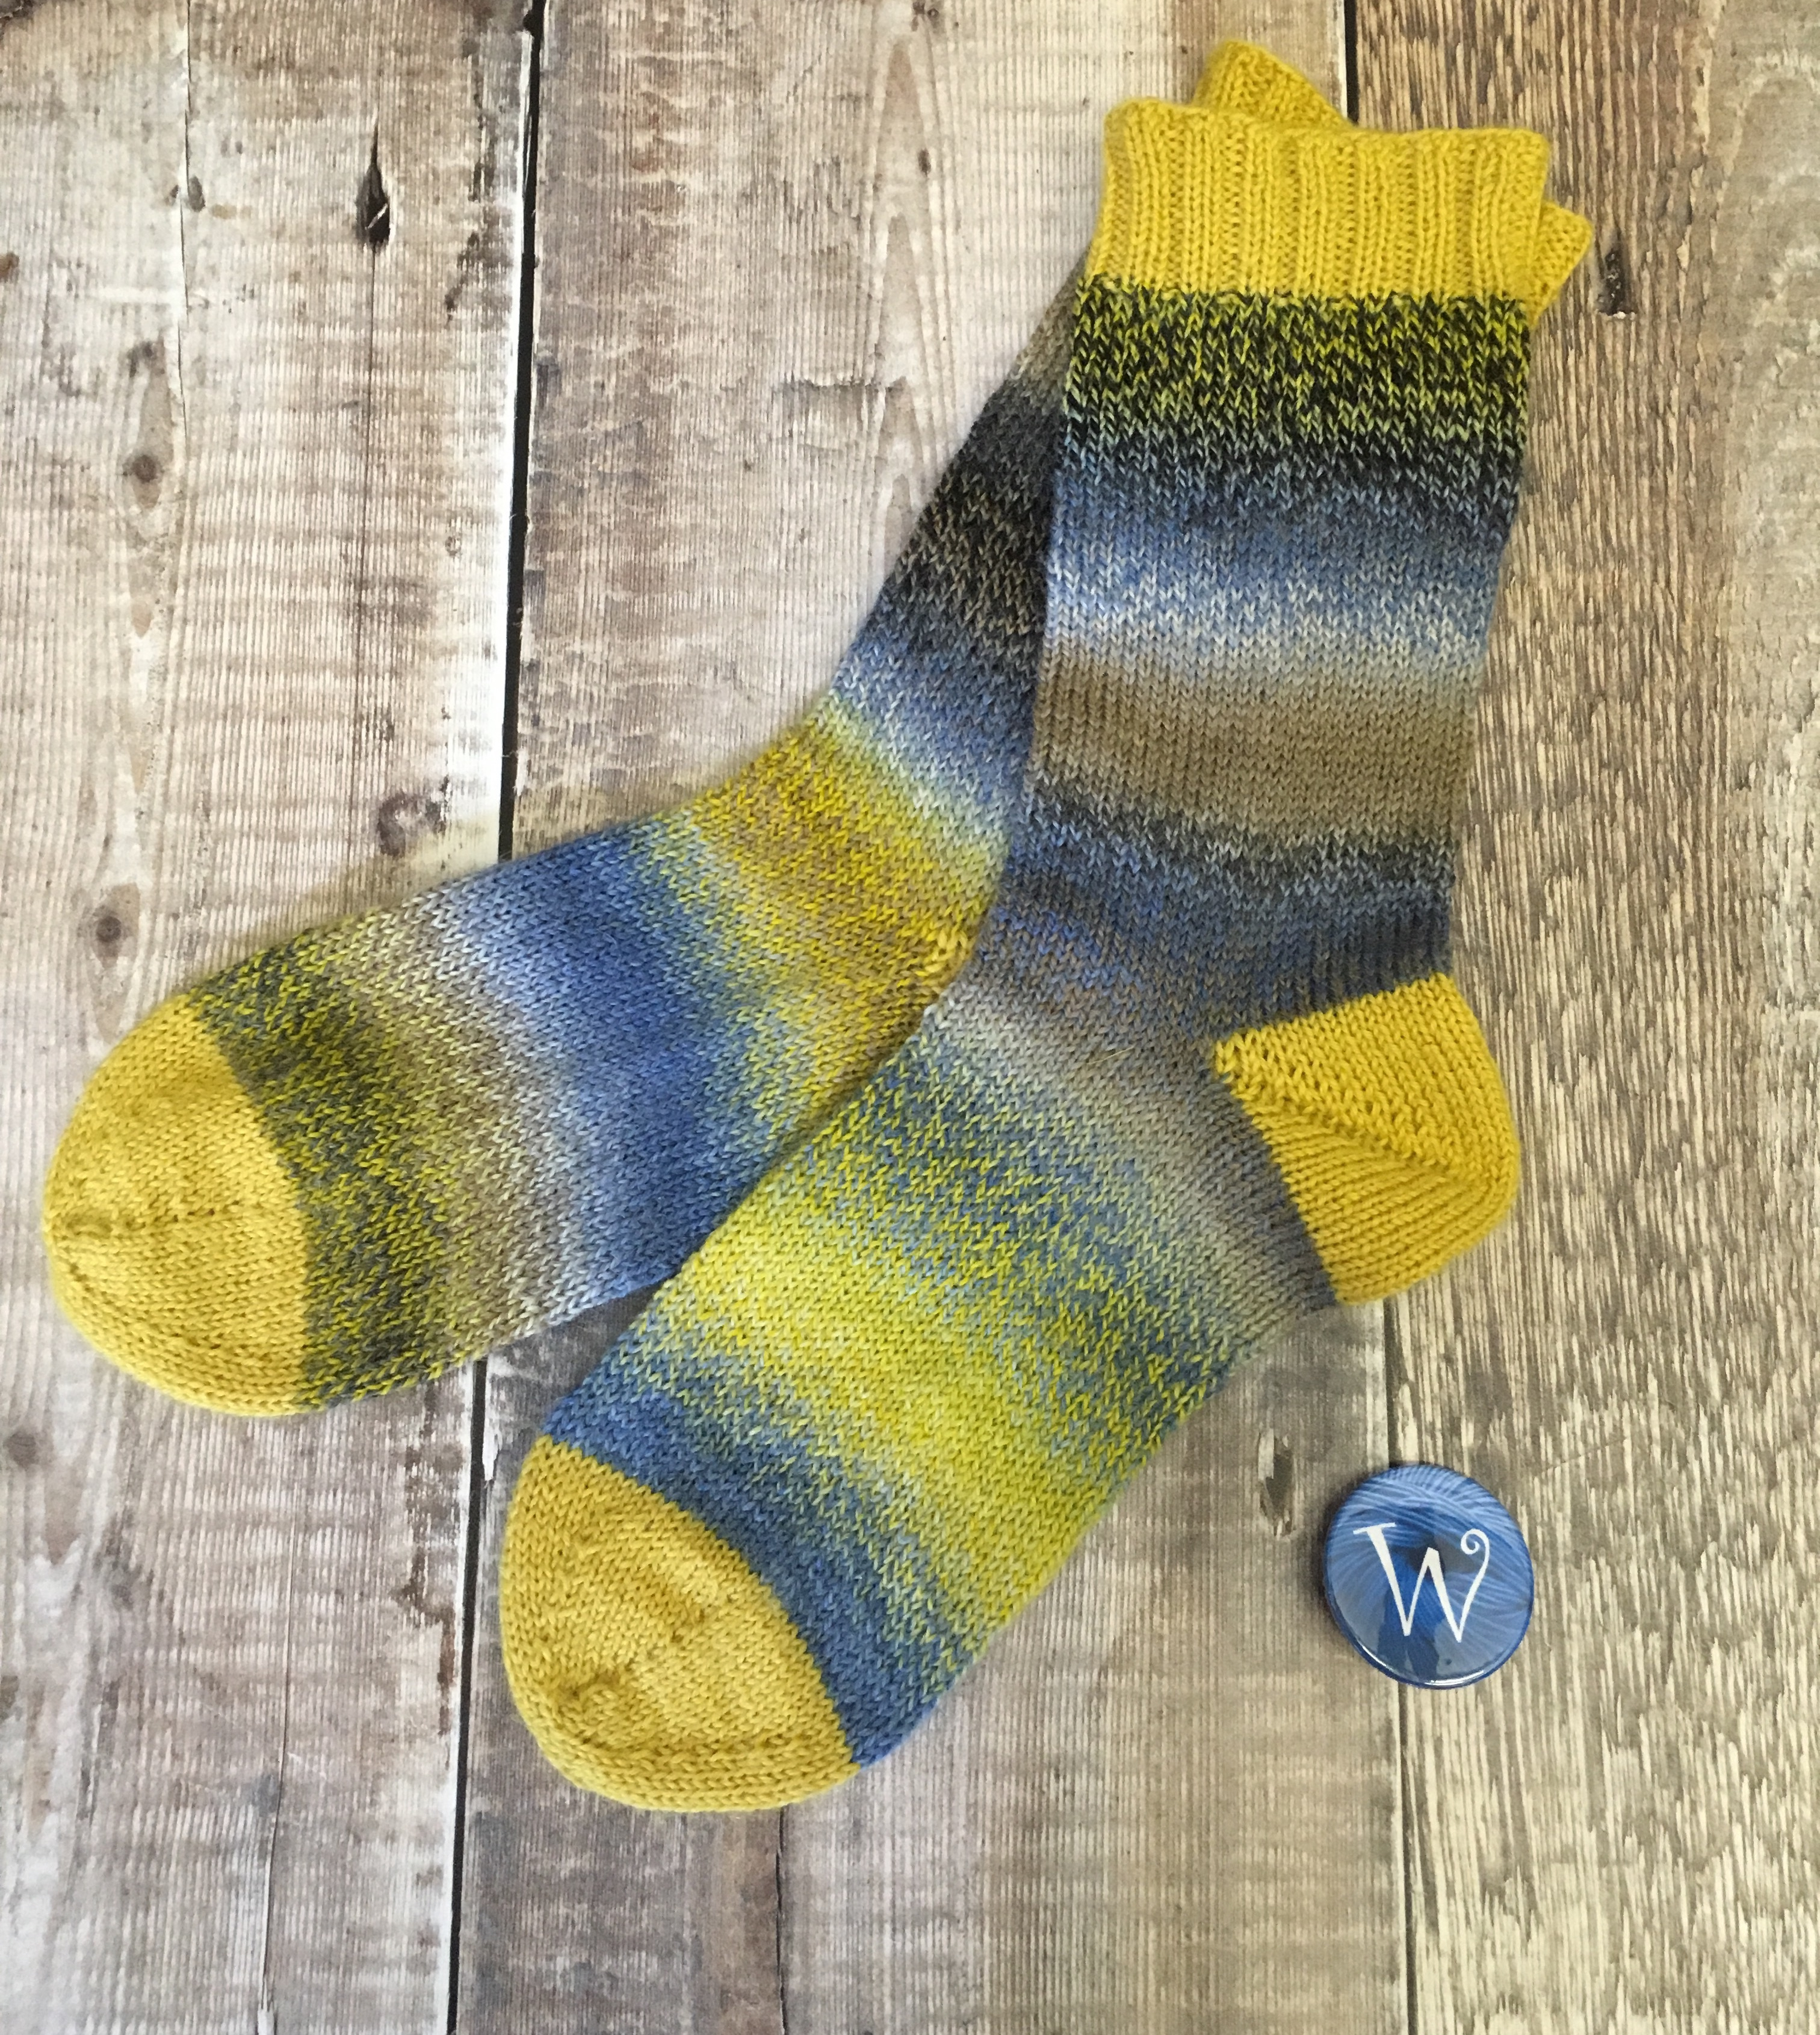 Knitting Sock Patterns For Beginners Sock It To Em Learn To Knit Socks Short Course Woolaballoo